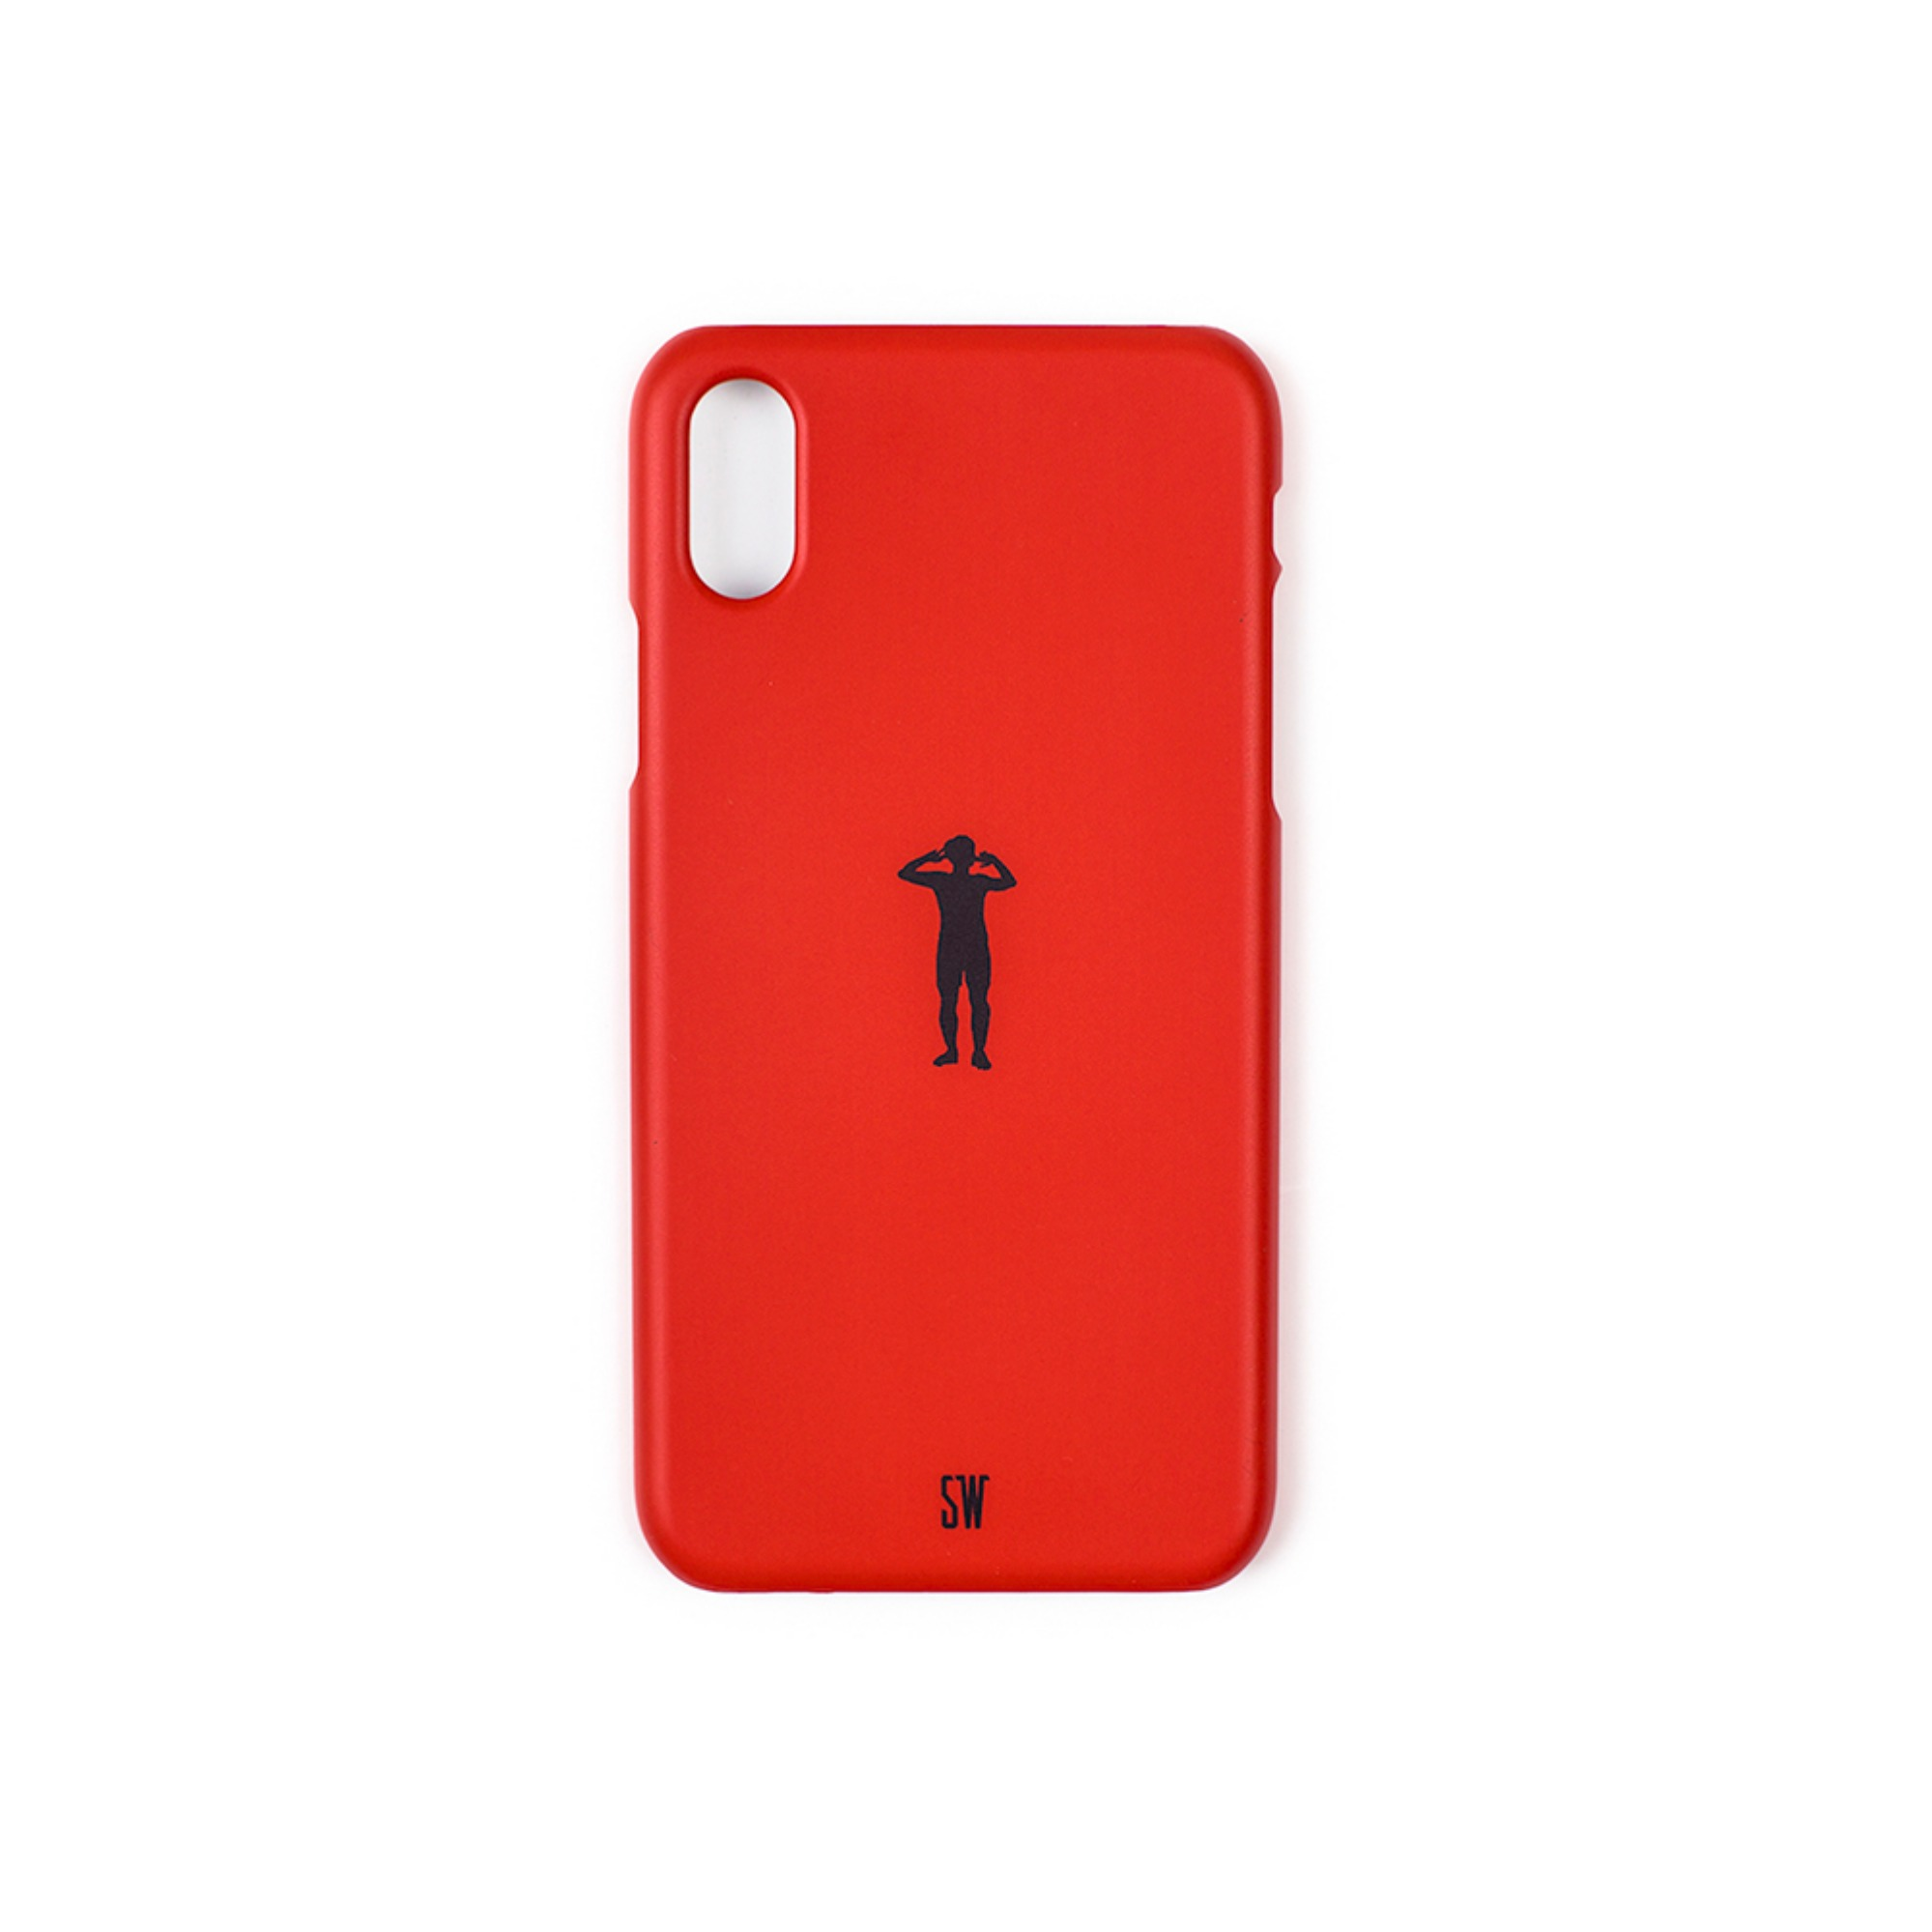 'SEUNGWOOLEE' SMARTPHONE CASE - 'SW' SILHOUETTE (RED)